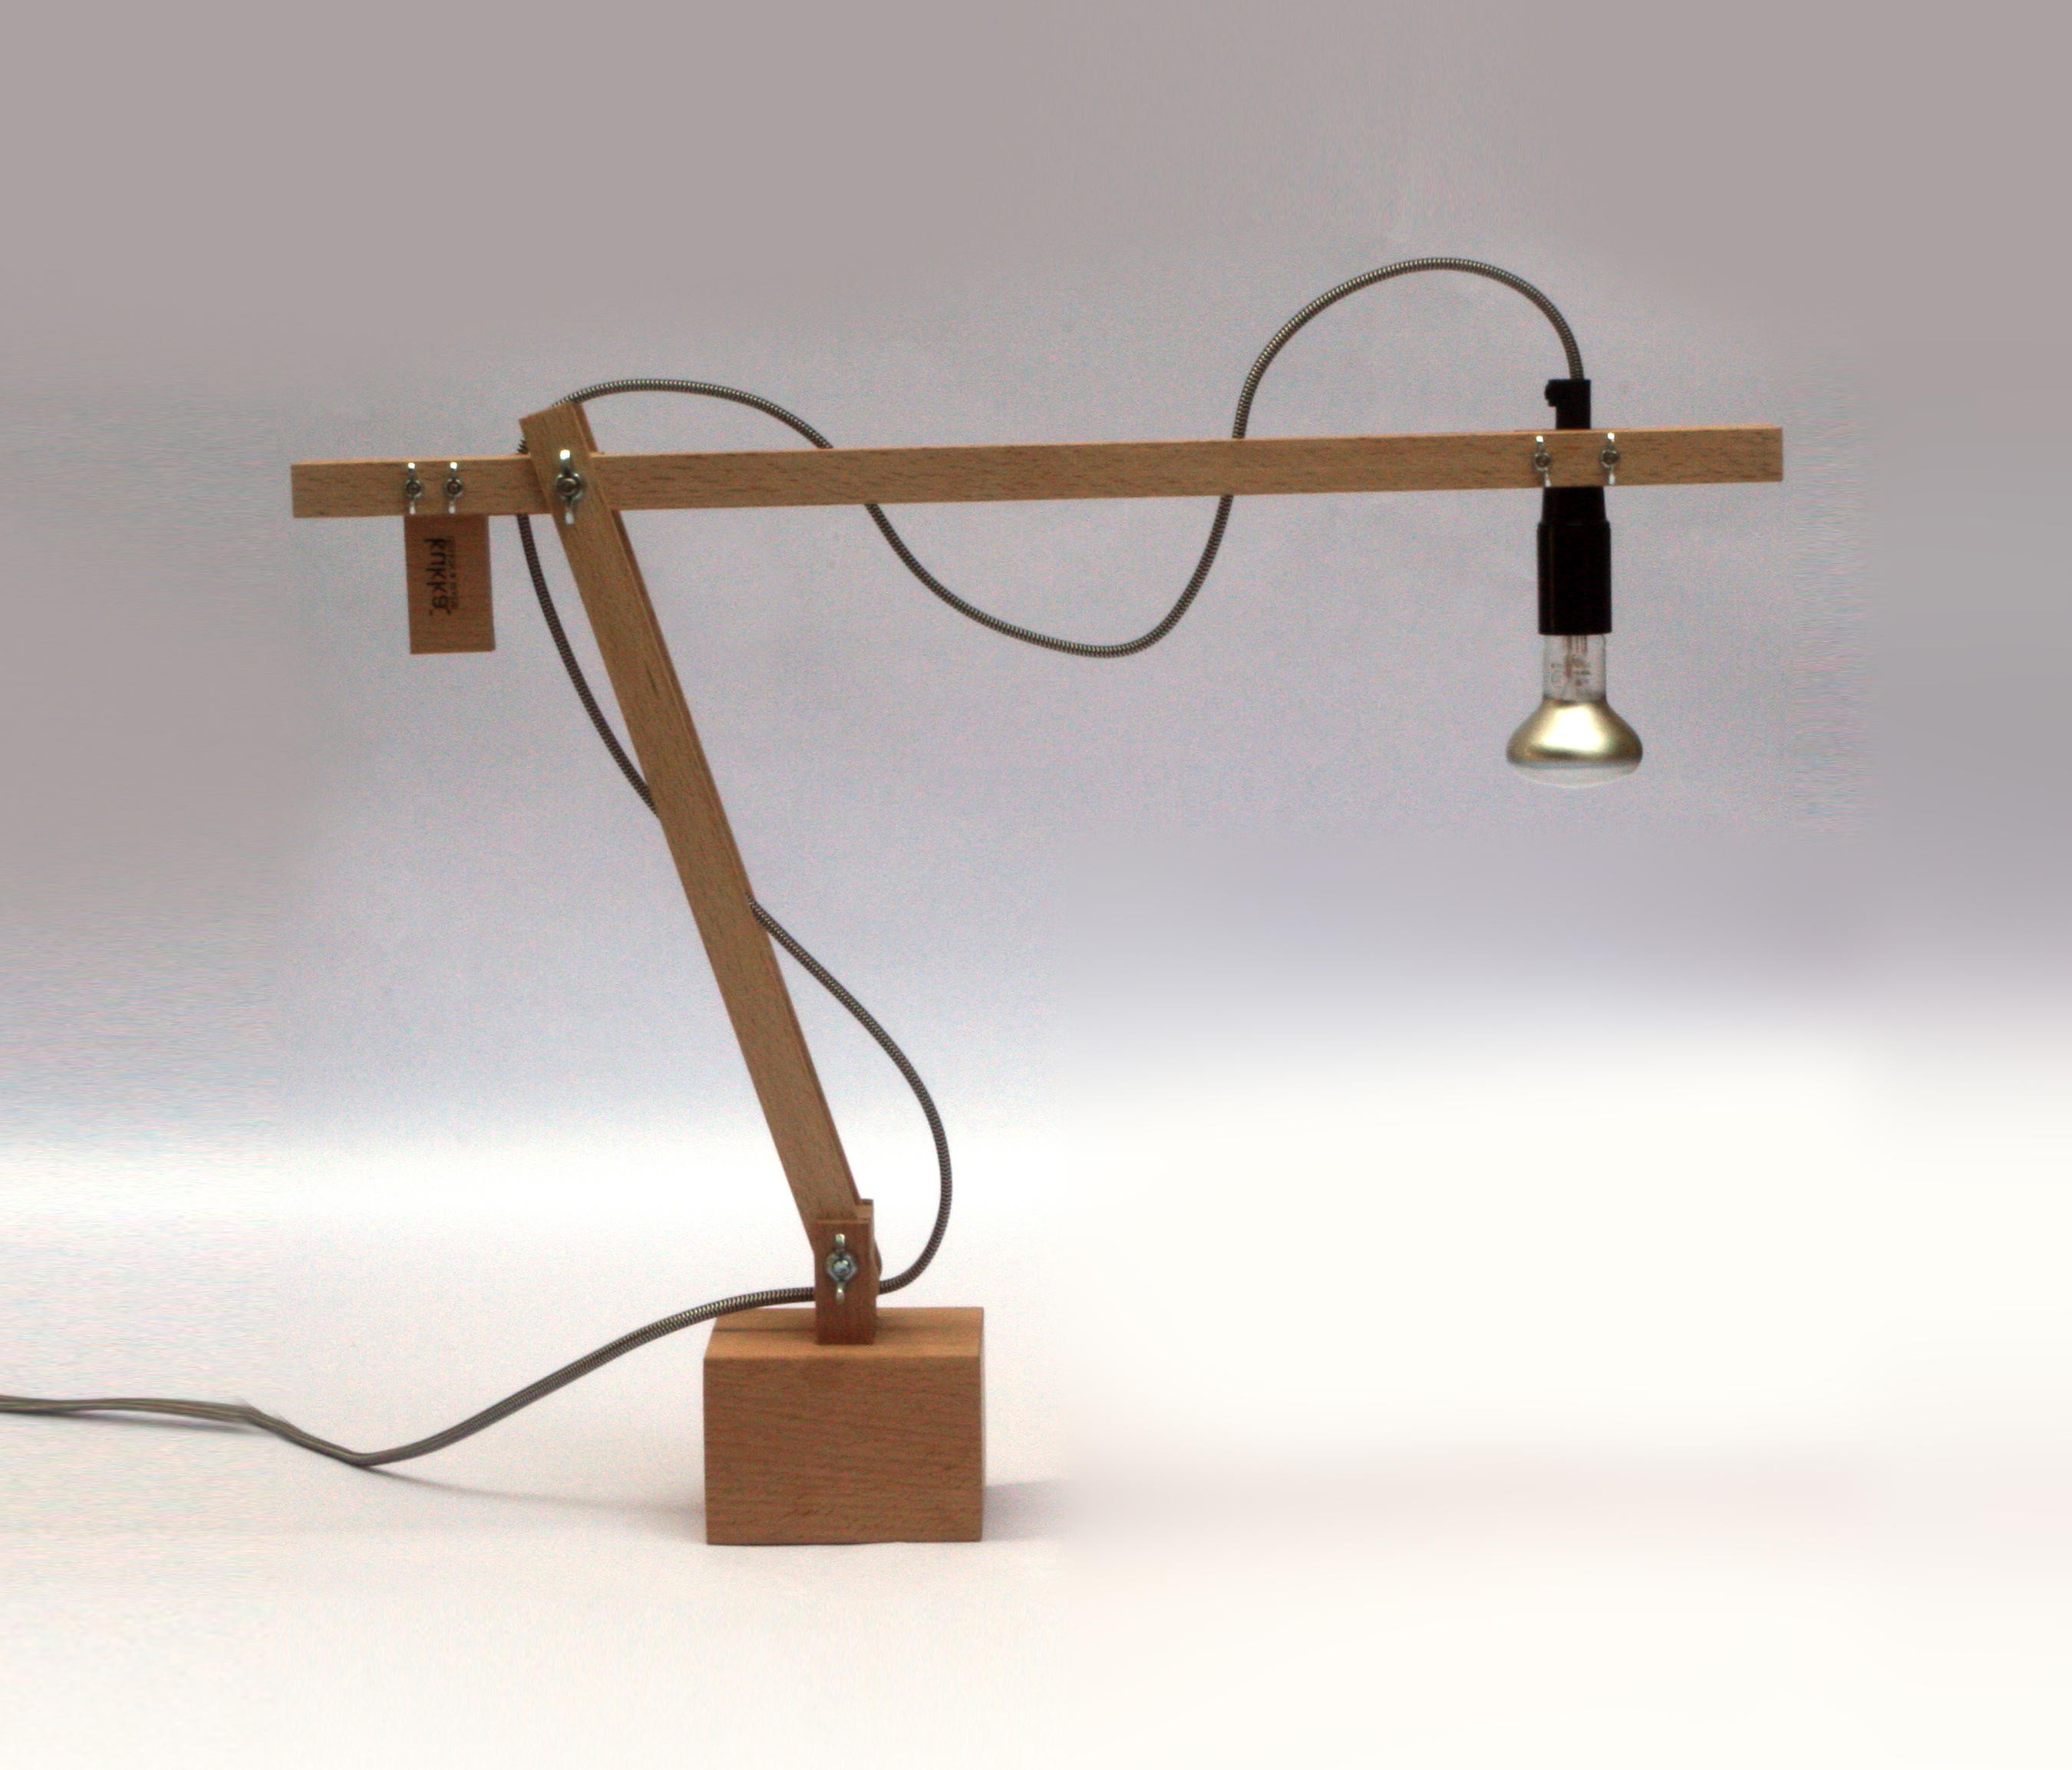 Best ideas about Diy Desk Lamp . Save or Pin DIY TABLE LAMP Table lights from kukka Now.